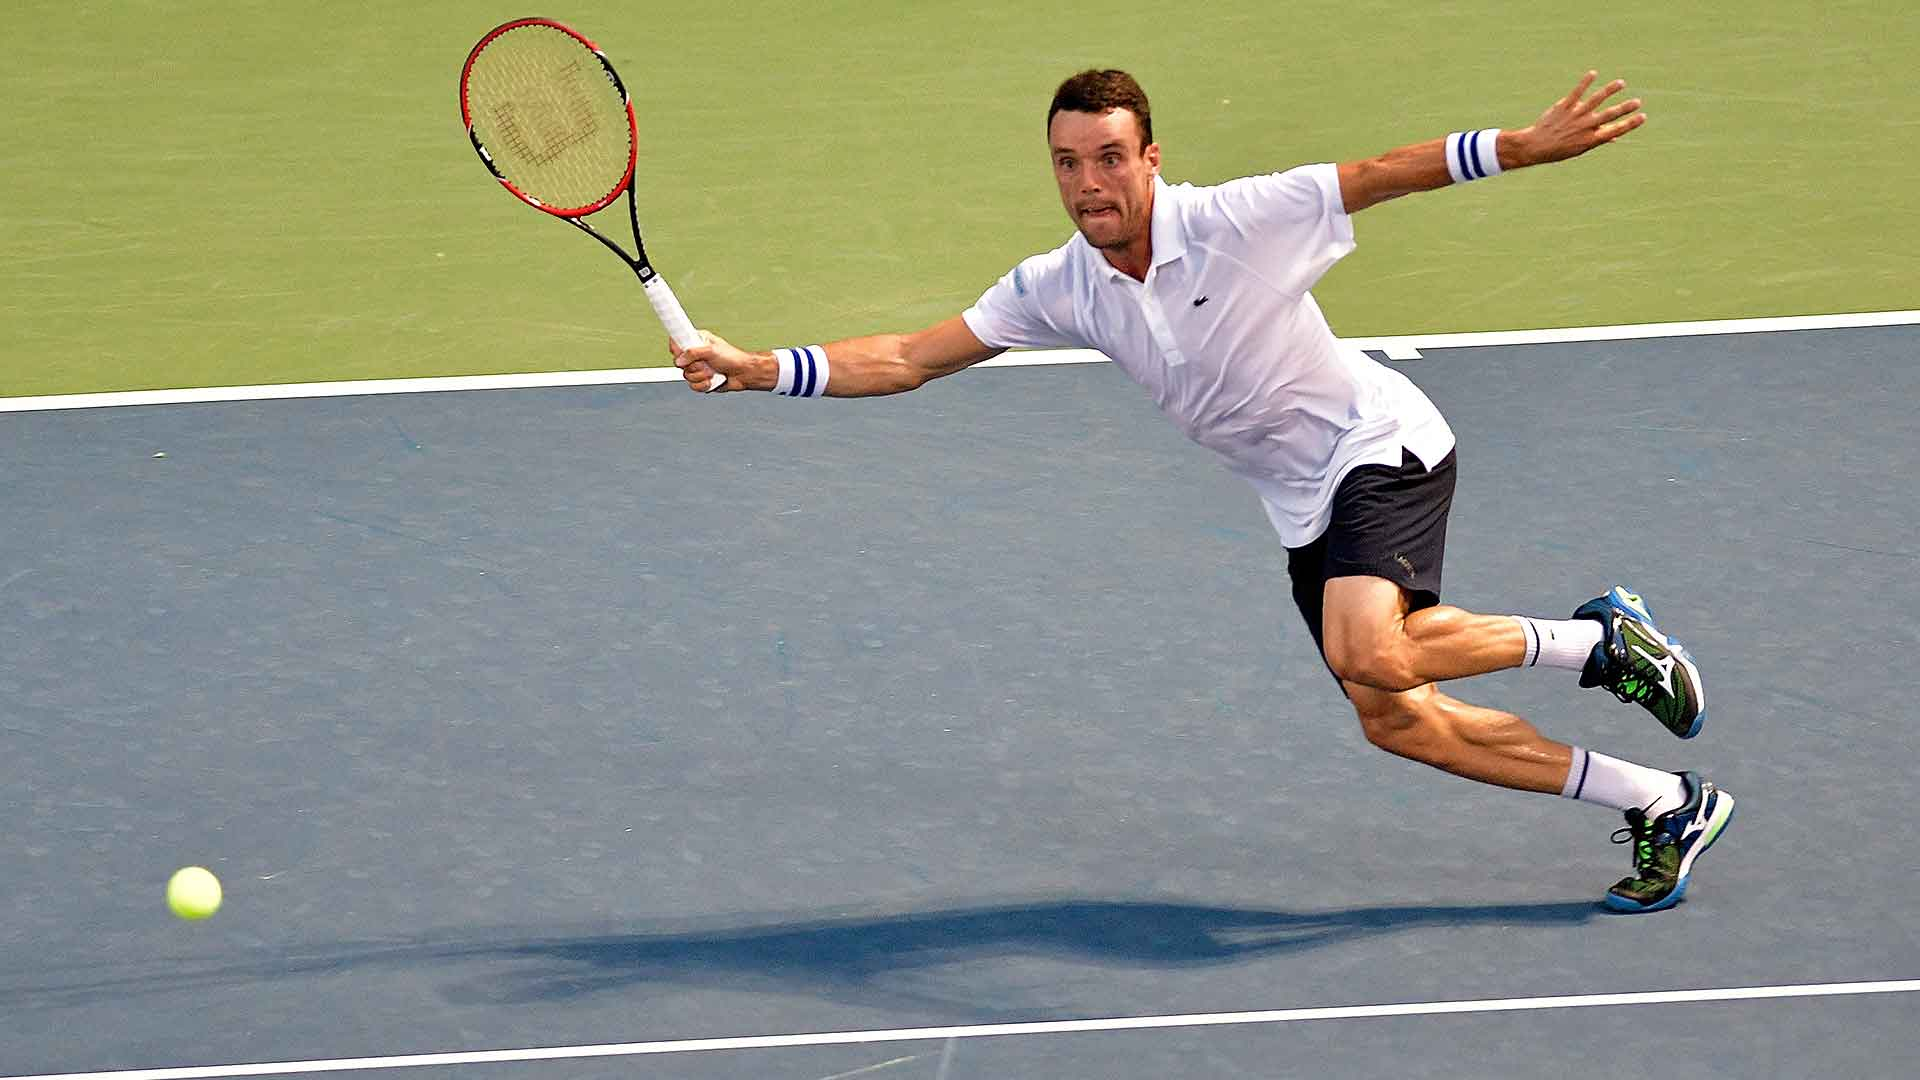 Roberto Bautista Agut advances to his first final in the United States after beating Viktor Troicki.